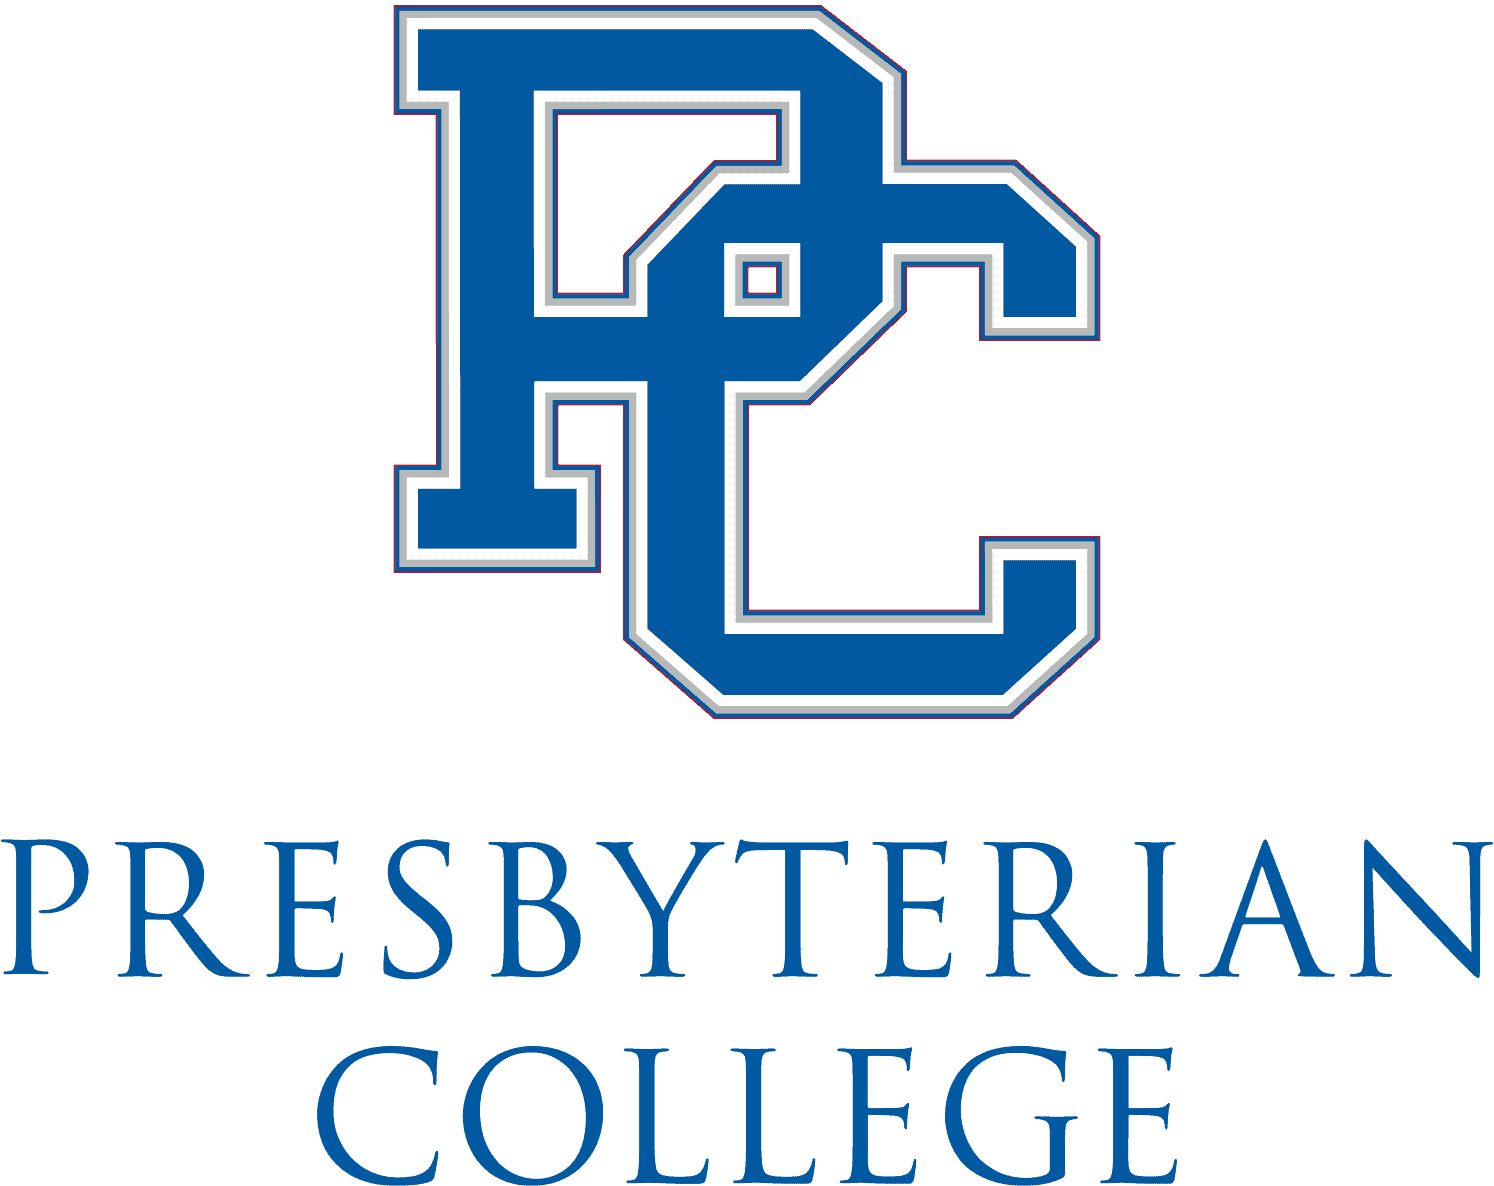 Presbyterian College Logo (PC) png